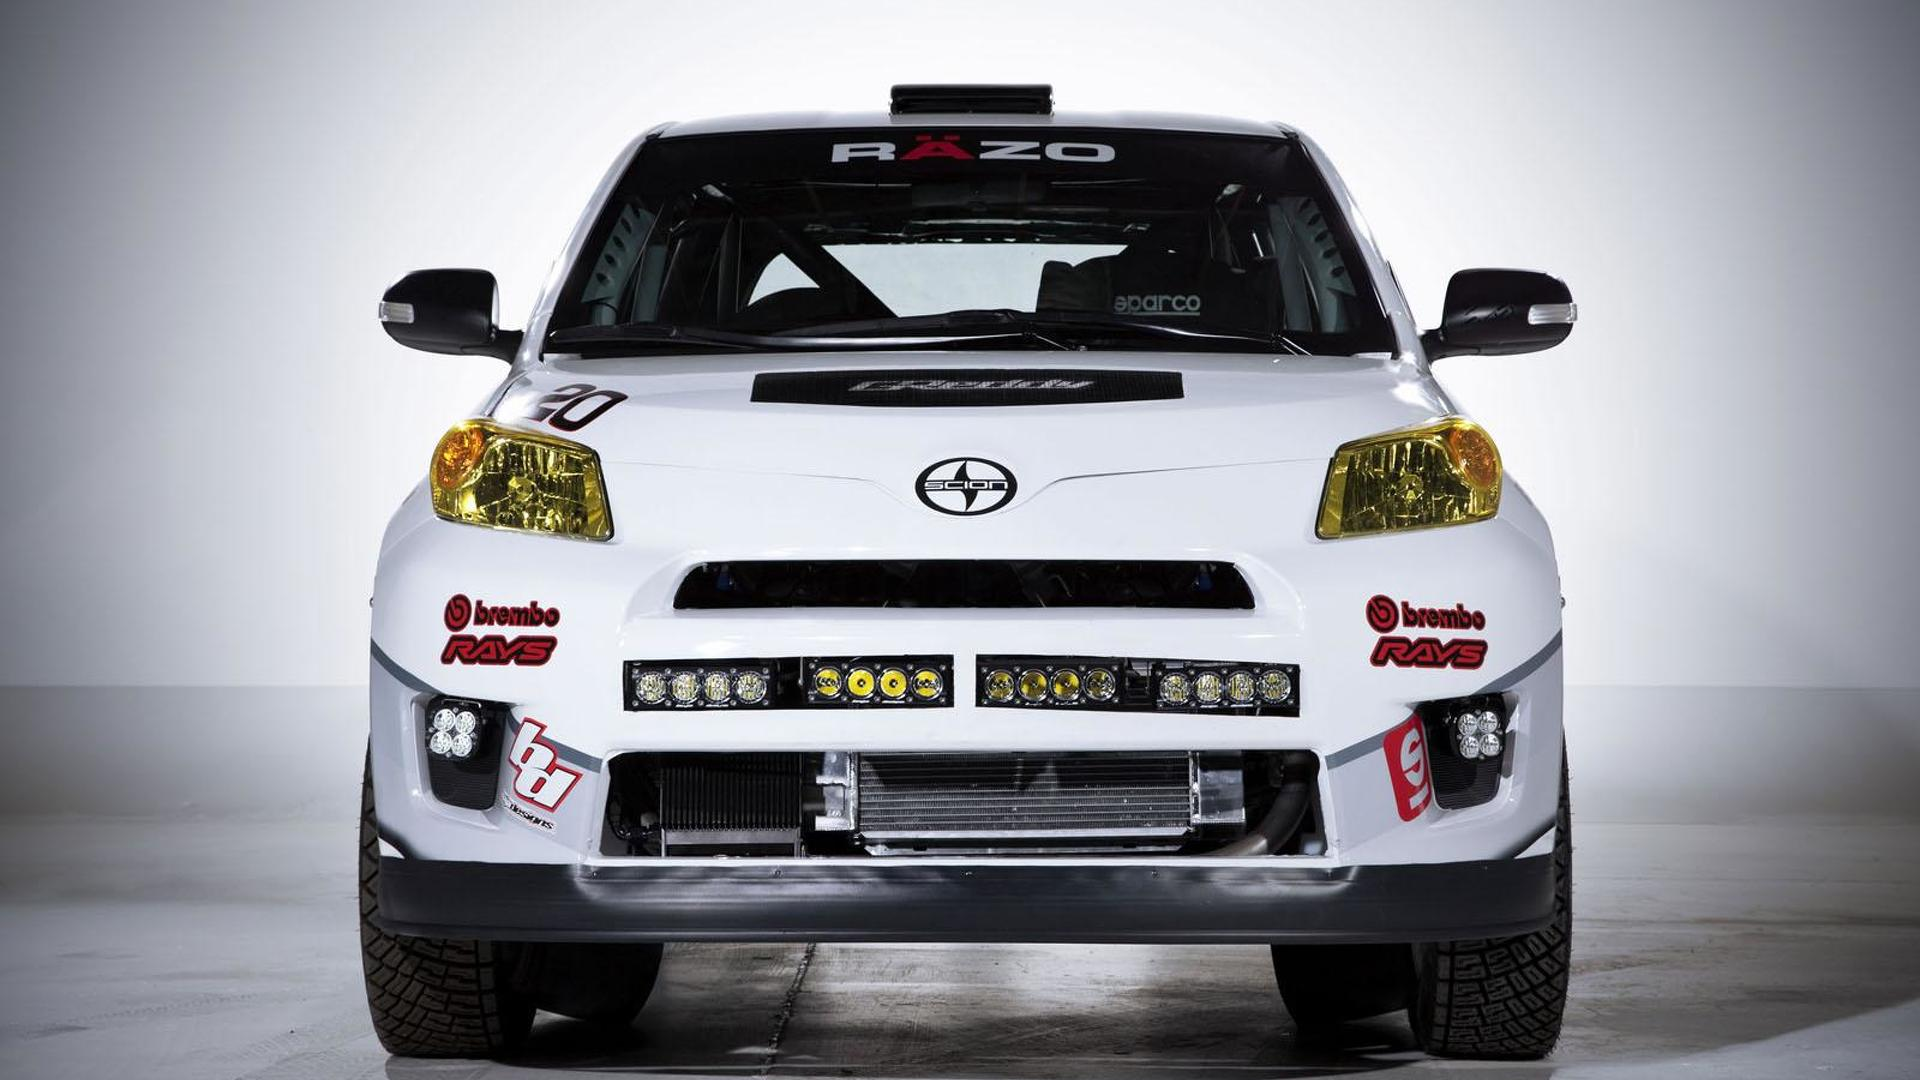 Scion xD rally car unveiled